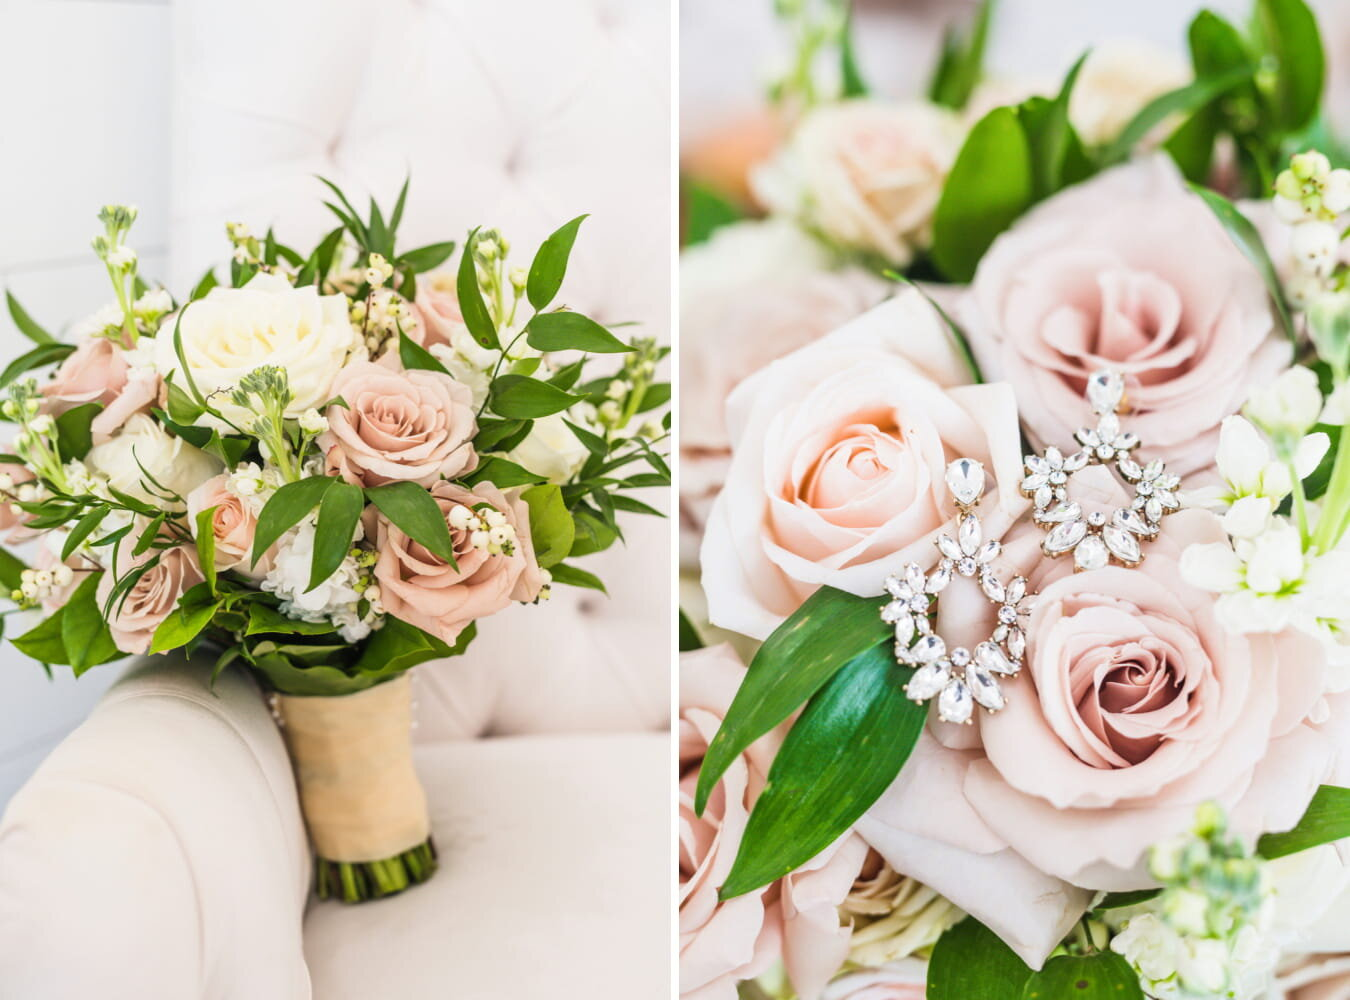 Dallas Wedding- Pharris Photography- Details- Alexiss + Chaz- Jewelry- Floral- Bouquet